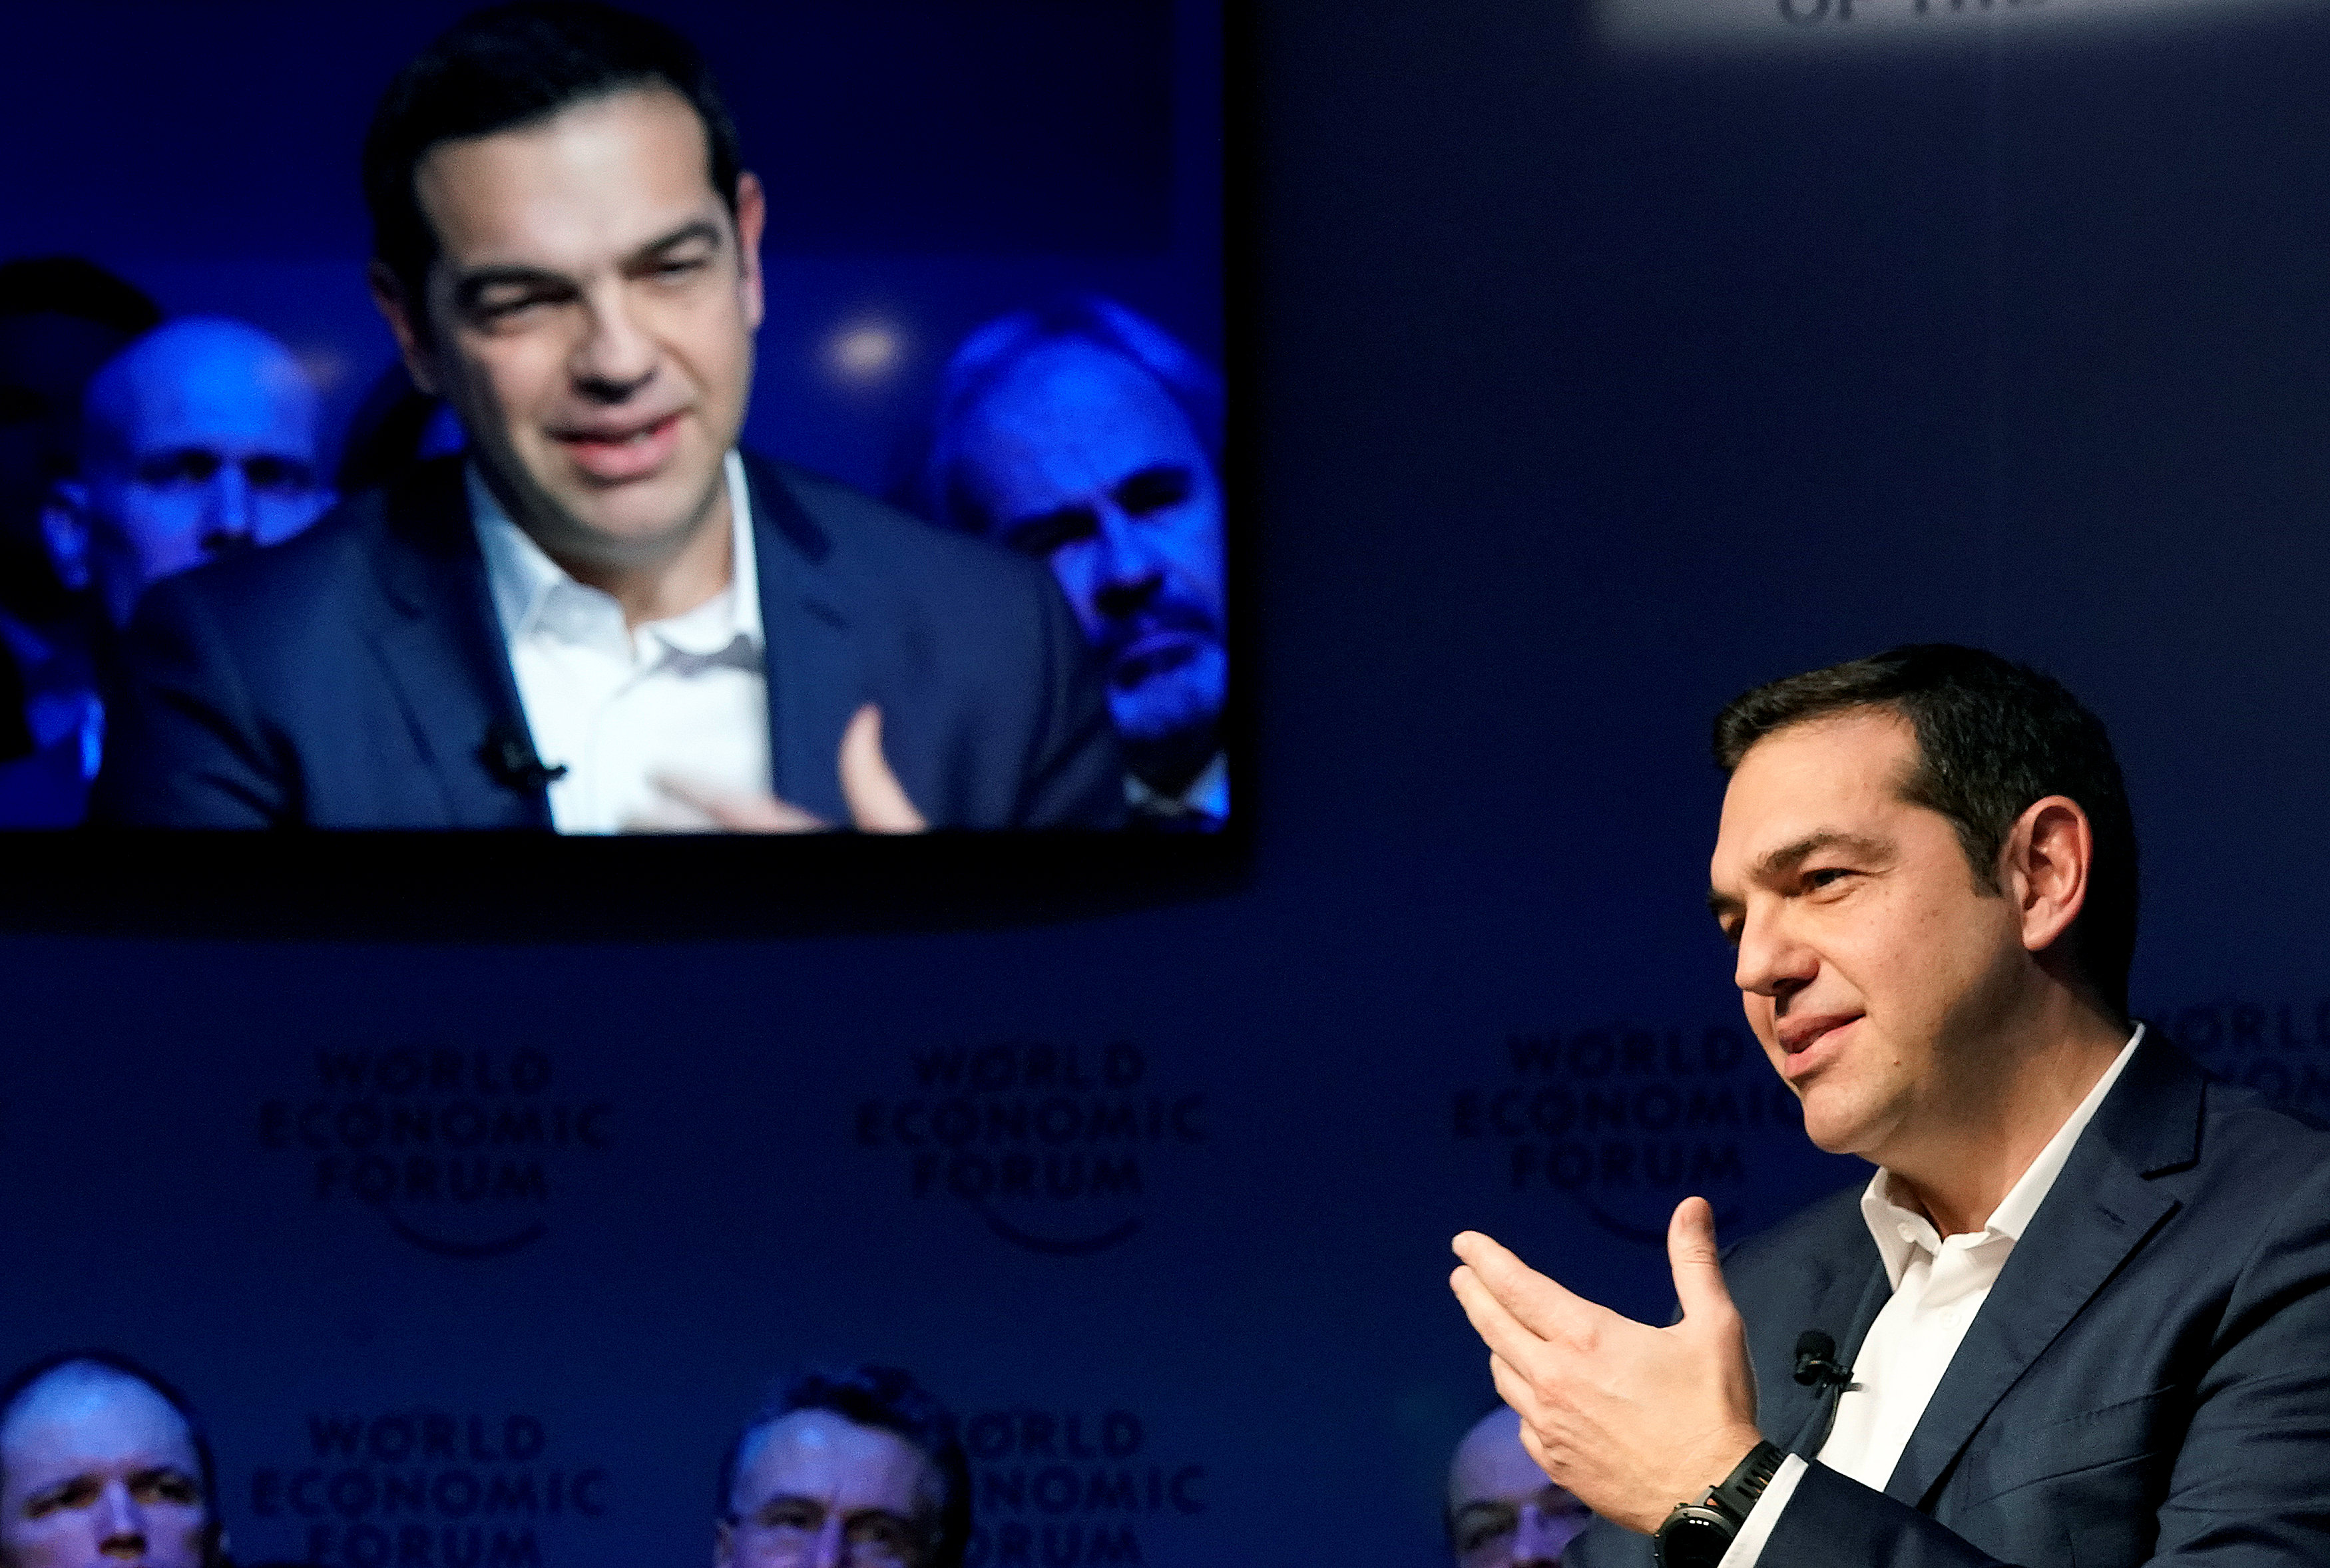 Greece's Prime Ministers Alexis Tsipras gestures as he speaks during the World Economic Forum (WEF) annual meeting in Davos, Switzerland January 24, 2018.